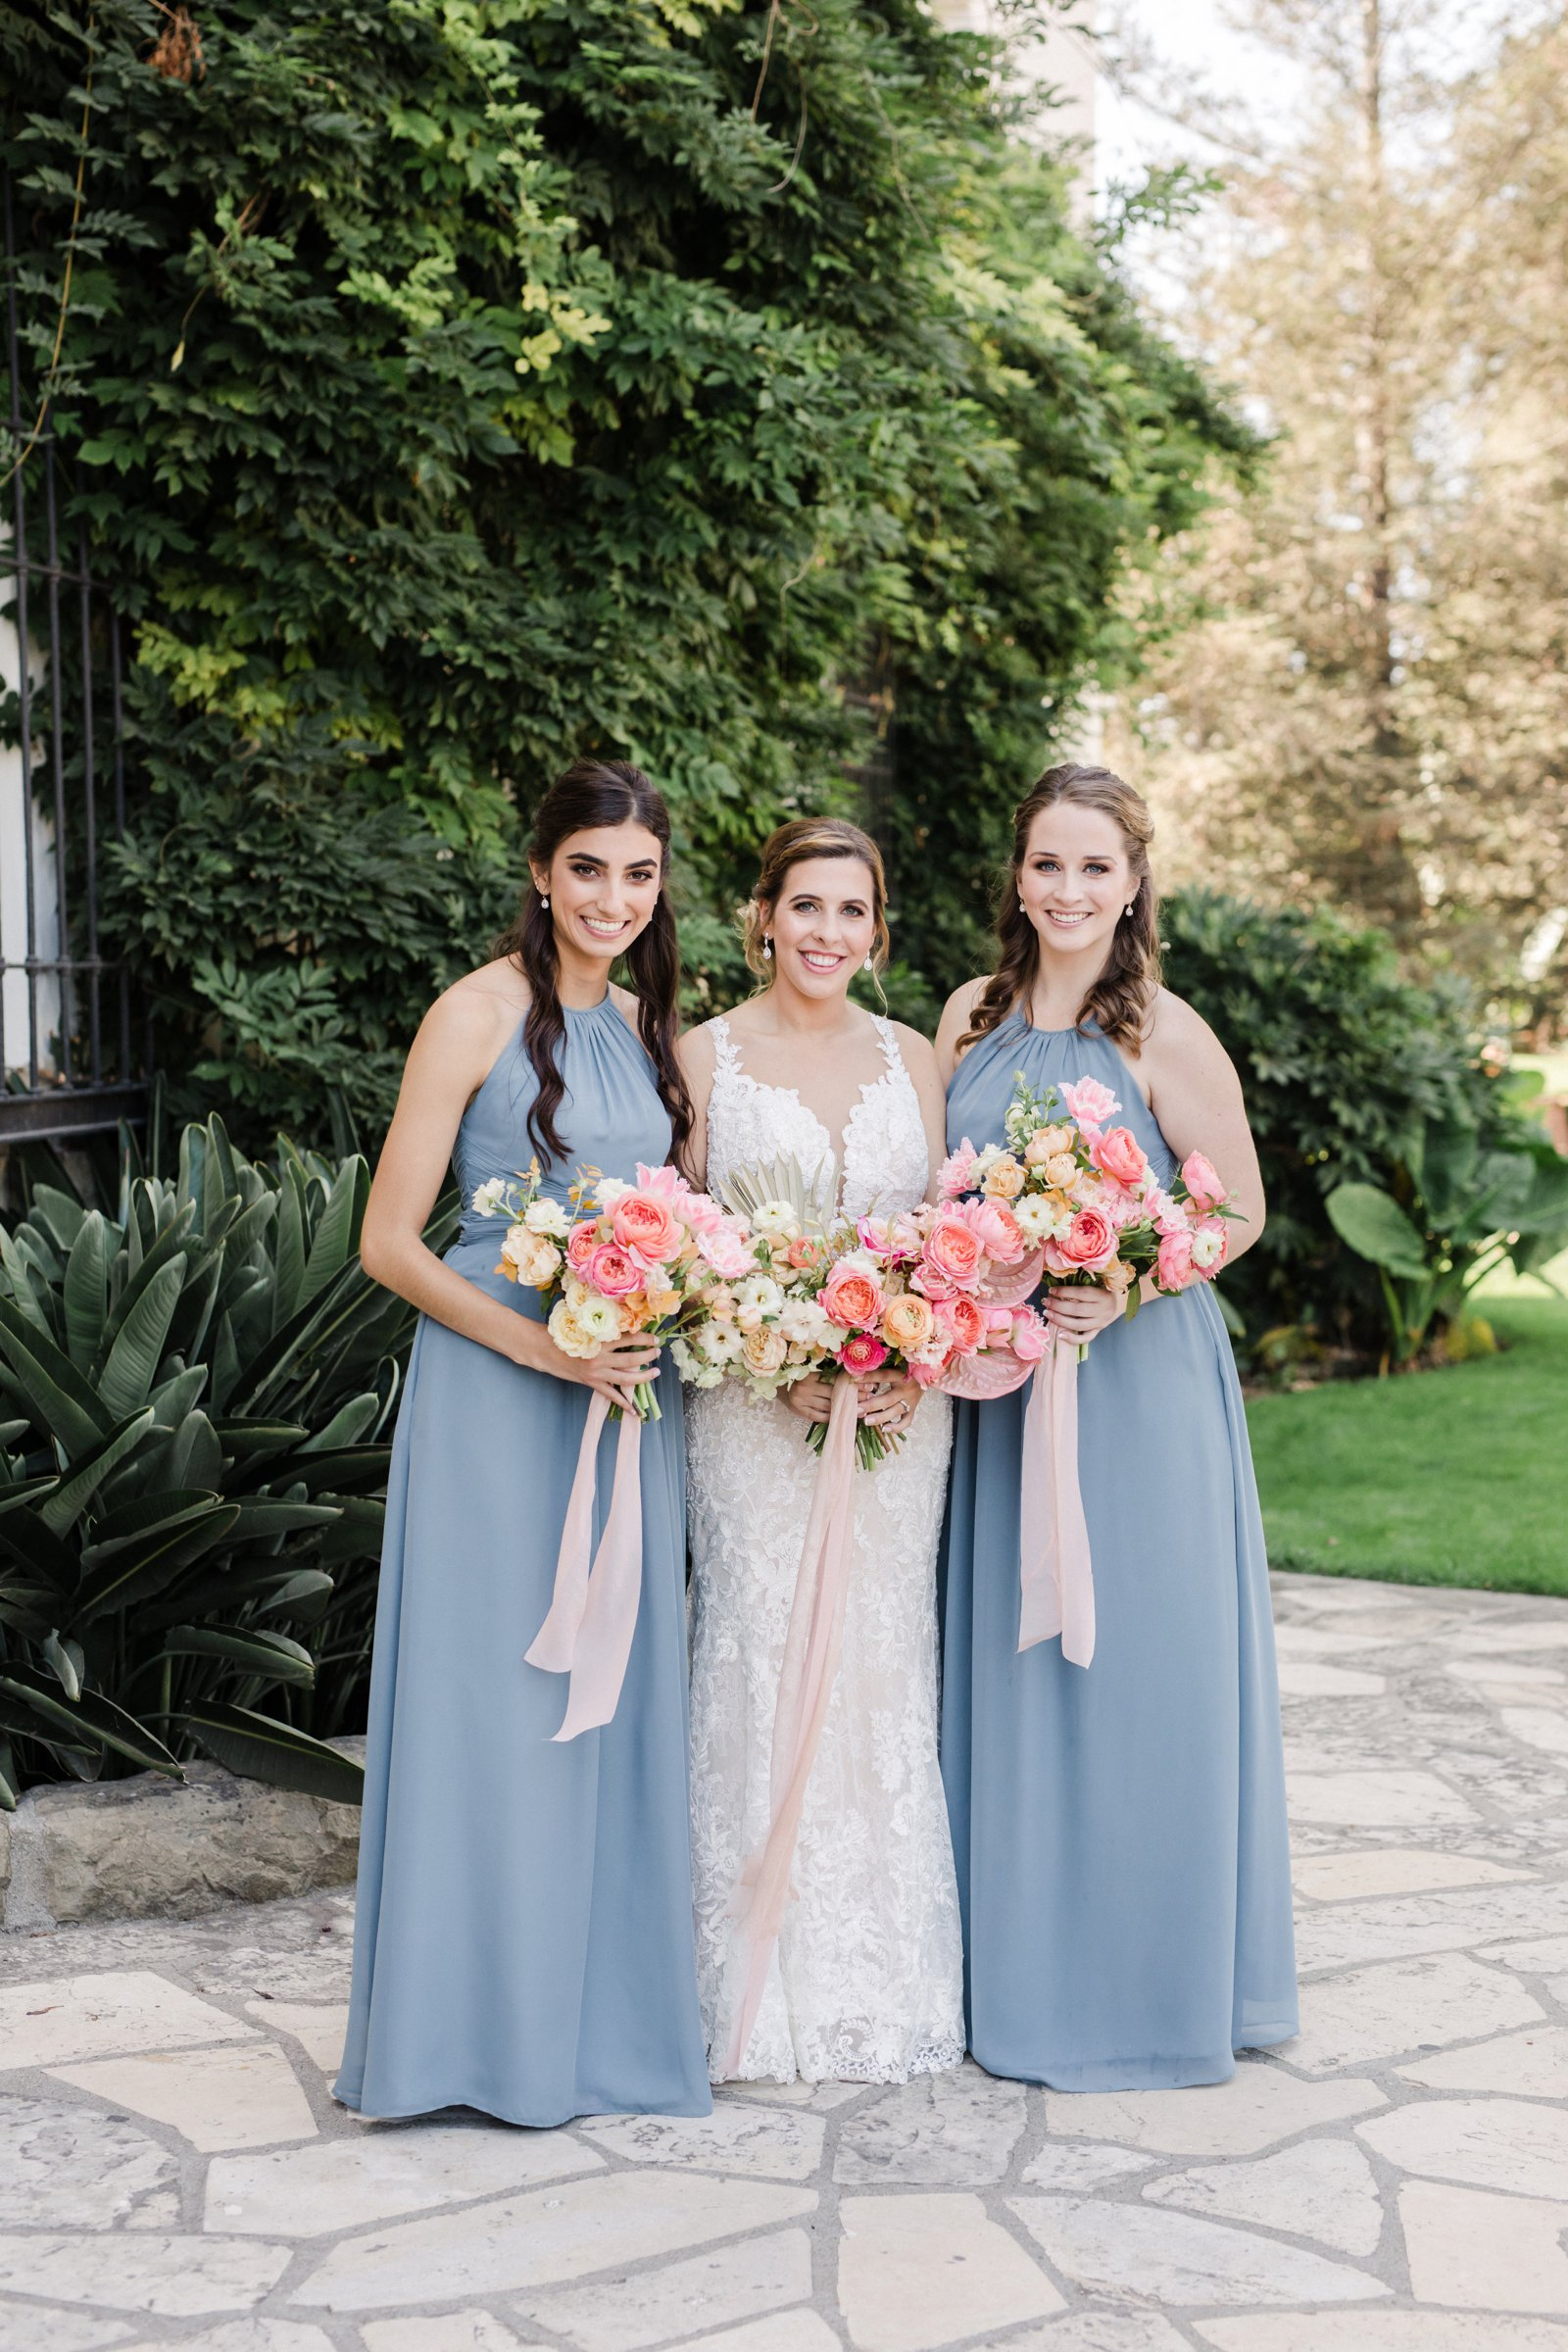 www.santabarbarawedding.com | Anna Delores Photography | Kimpton Canary Hotel | Onyx + Redwood | Dream Catcher Artistry | Bride and Bridesmaids